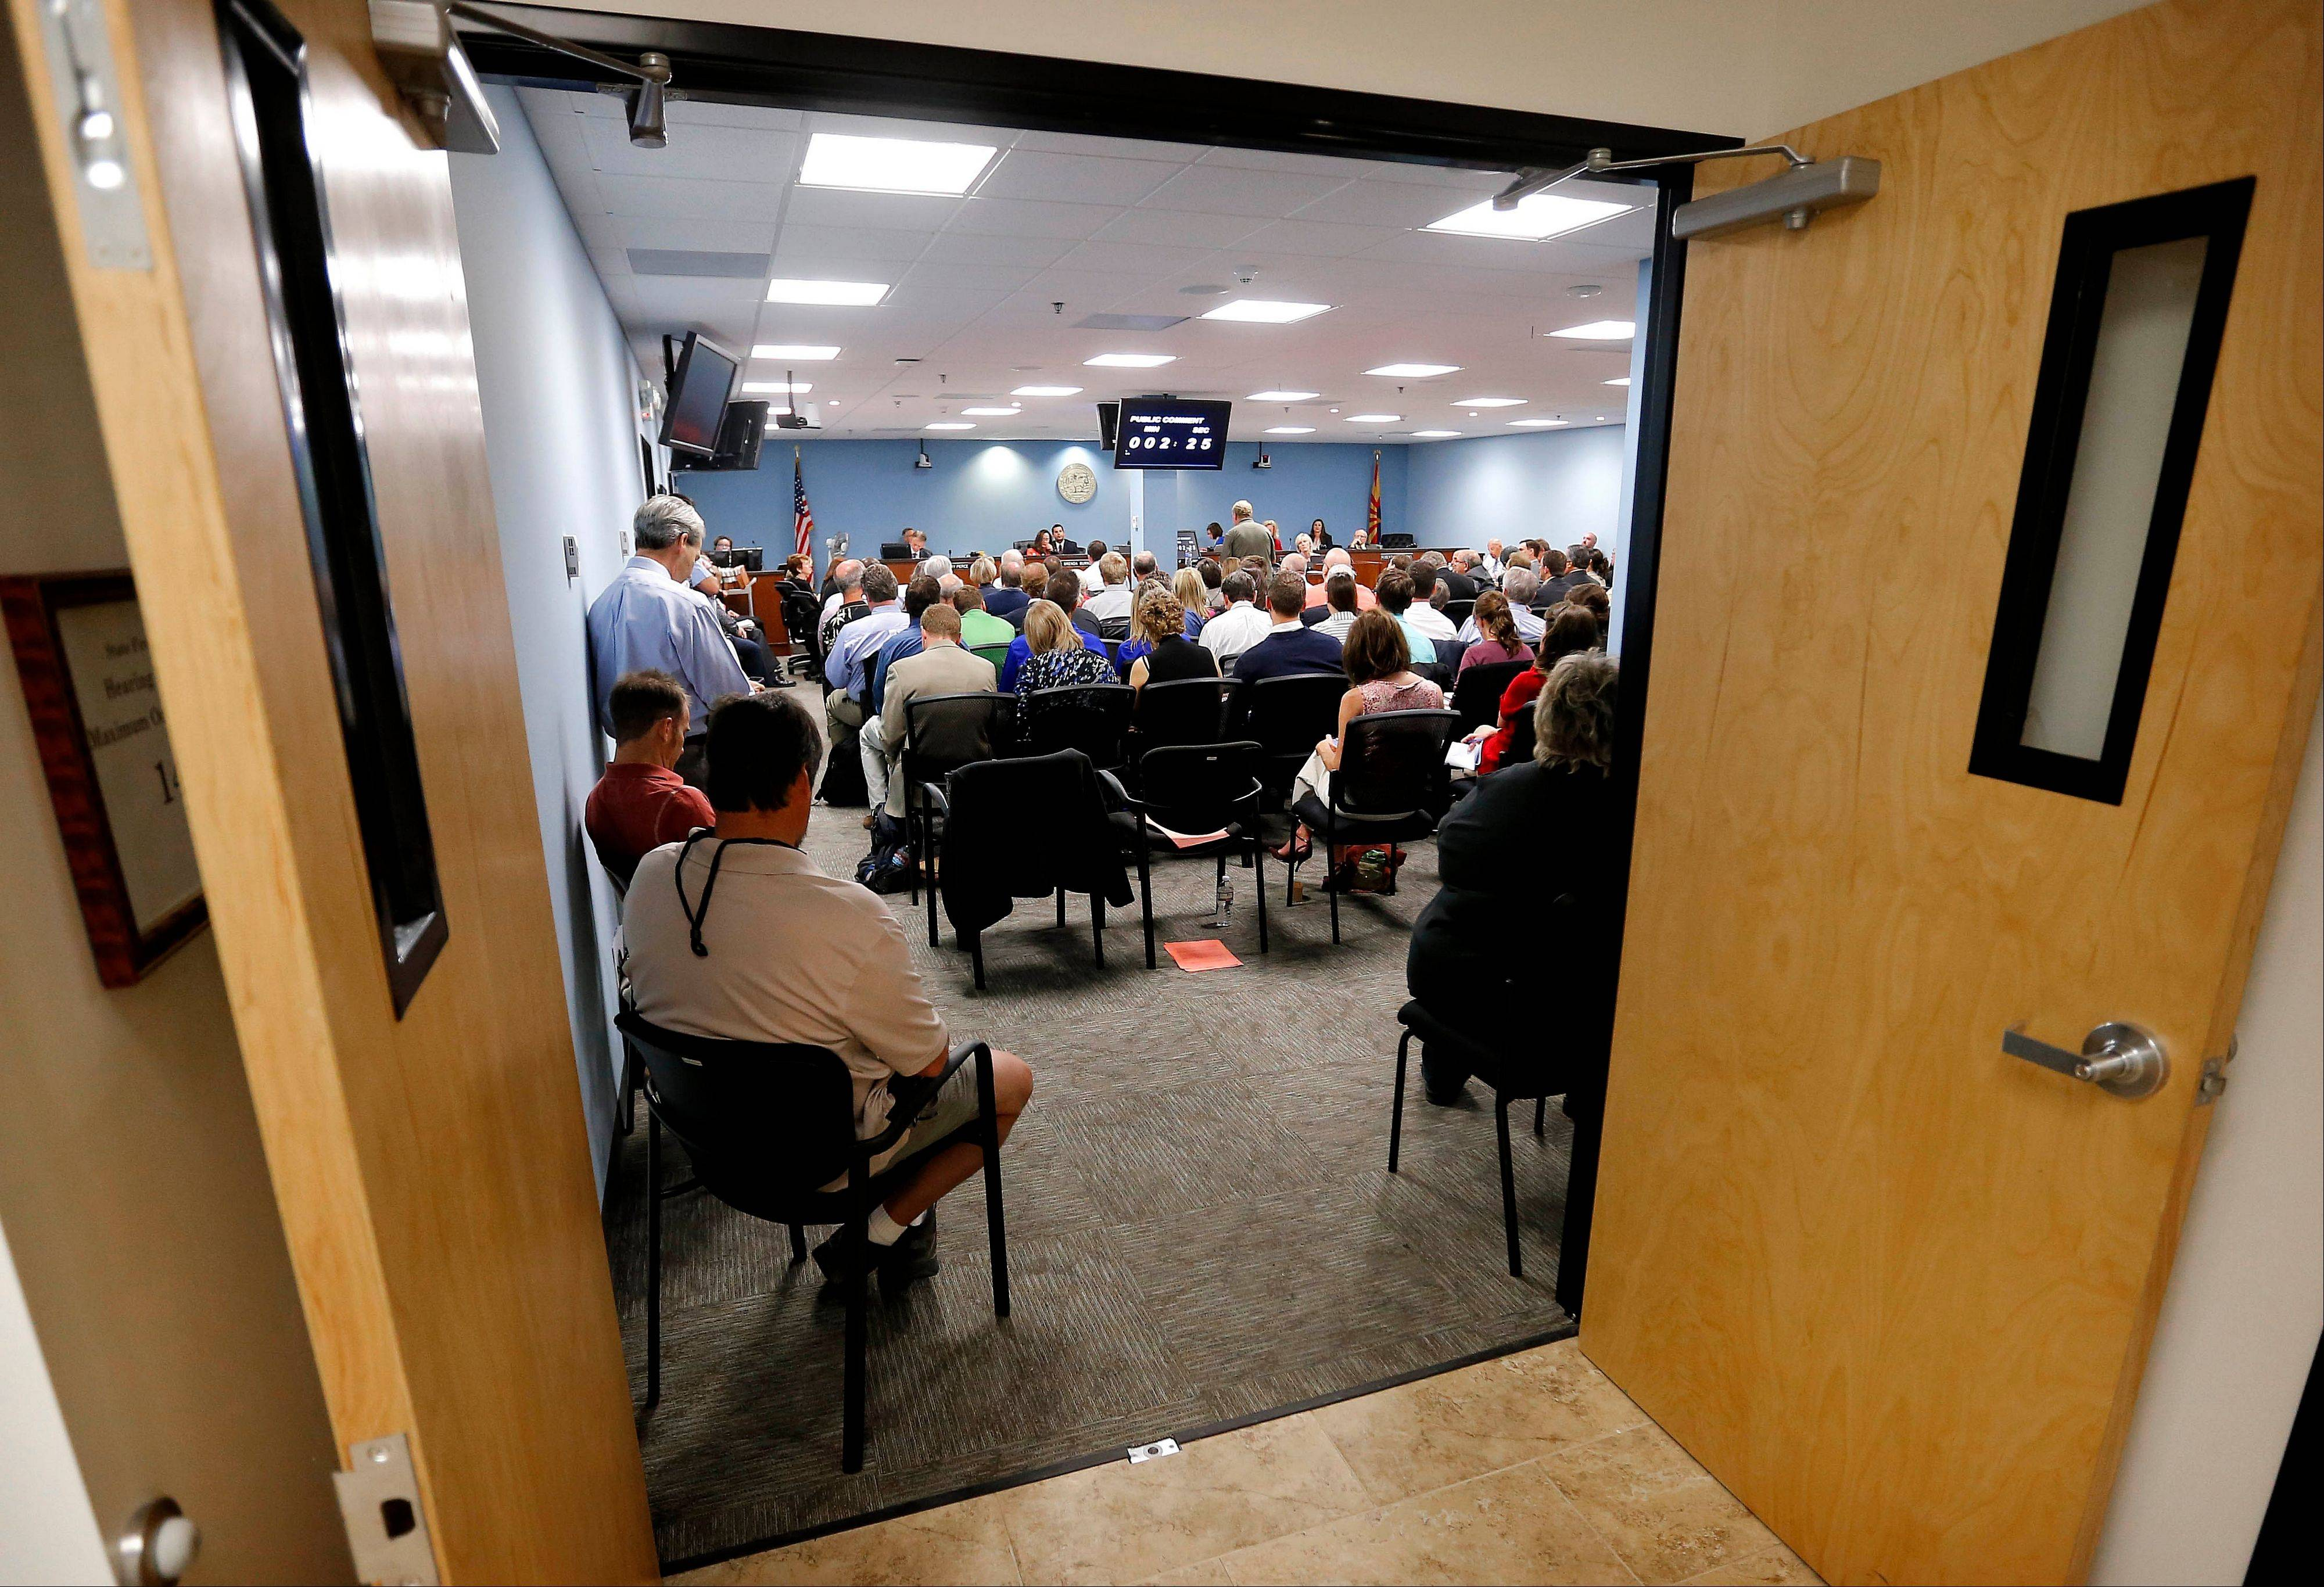 The meeting room is filled during a hearing at the Arizona Corporation Commission on Wednesday in Phoenix. The commission met to discuss rooftop solar power and to hear testimony from a series of residents who packed the room to express their opinions.